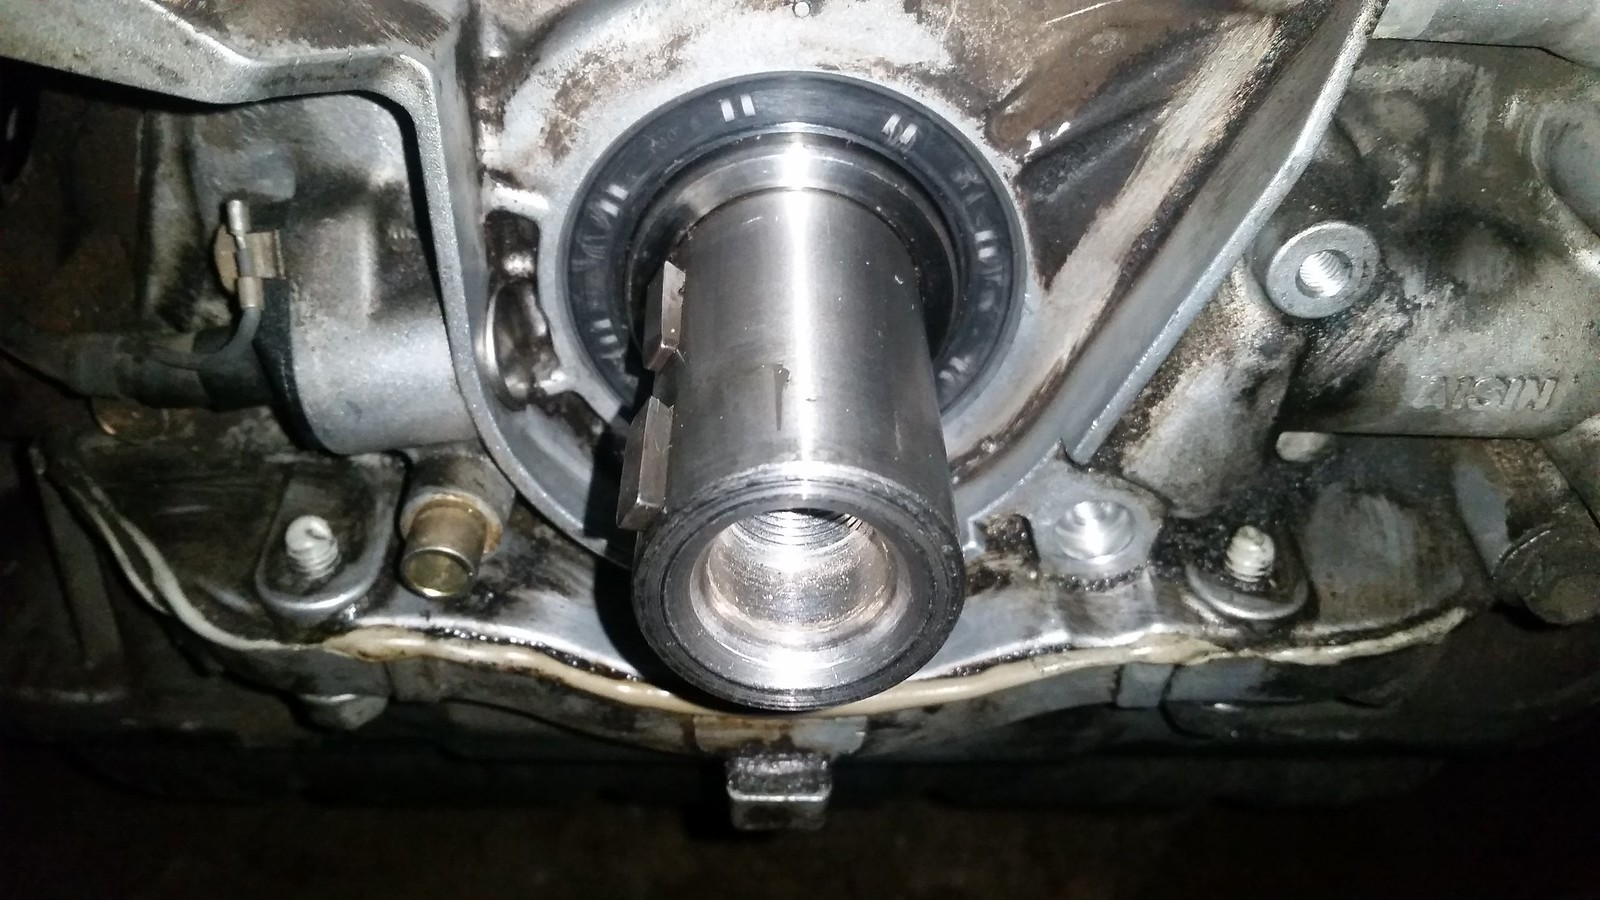 Diy complete timing beltwater pump seals lexus is forum remove cam gear by holding cam with adj wrench vvti cam gear has 14mm hex bit cap with a seal and a 10mm inside before removal you want to make sure vvti solutioingenieria Image collections